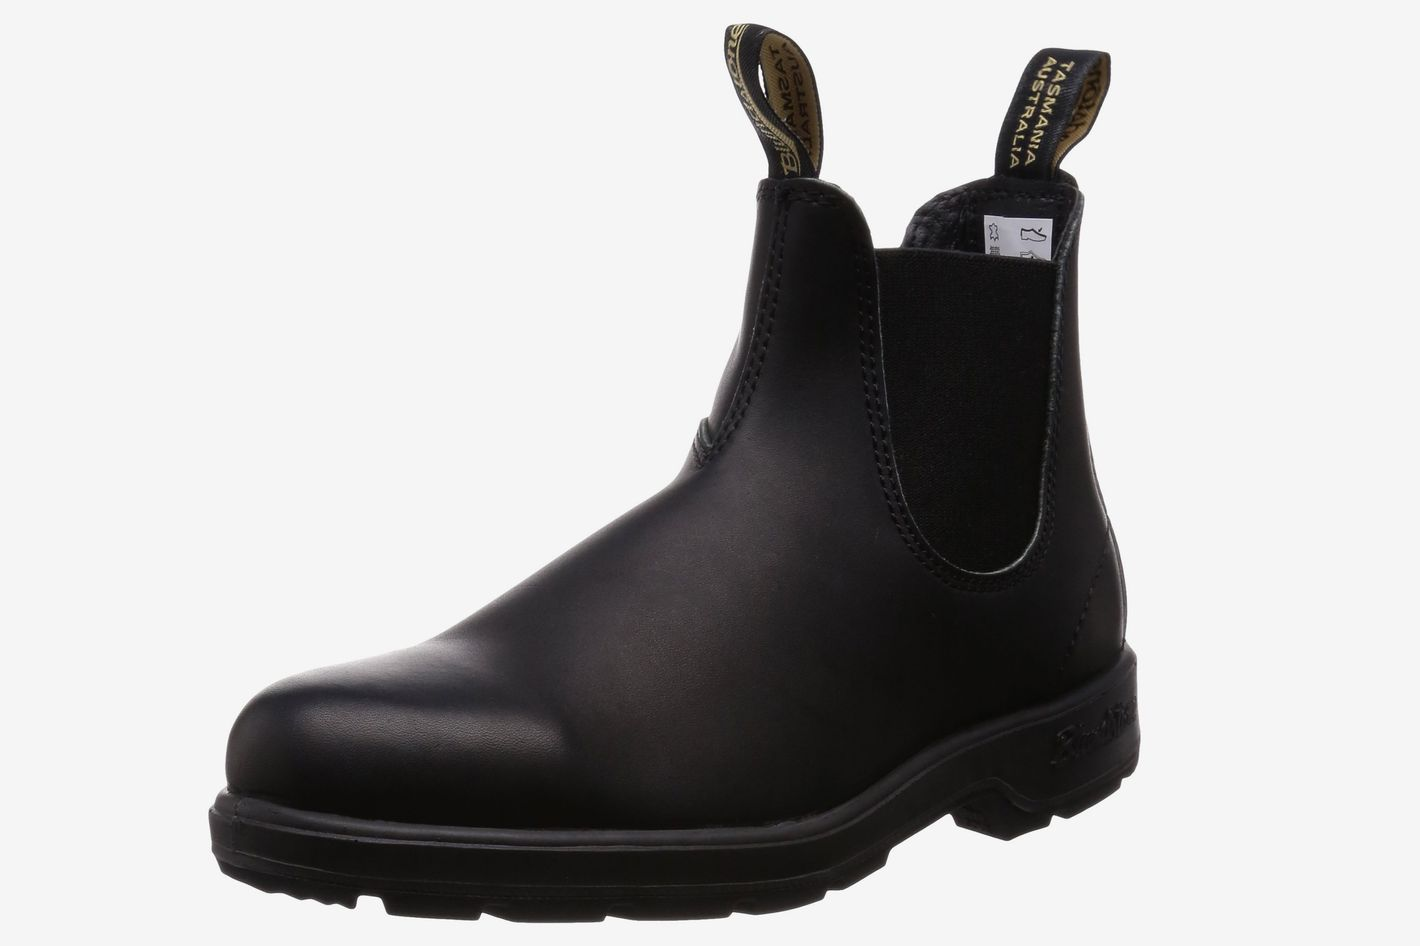 Blundstone 510 Black Boot